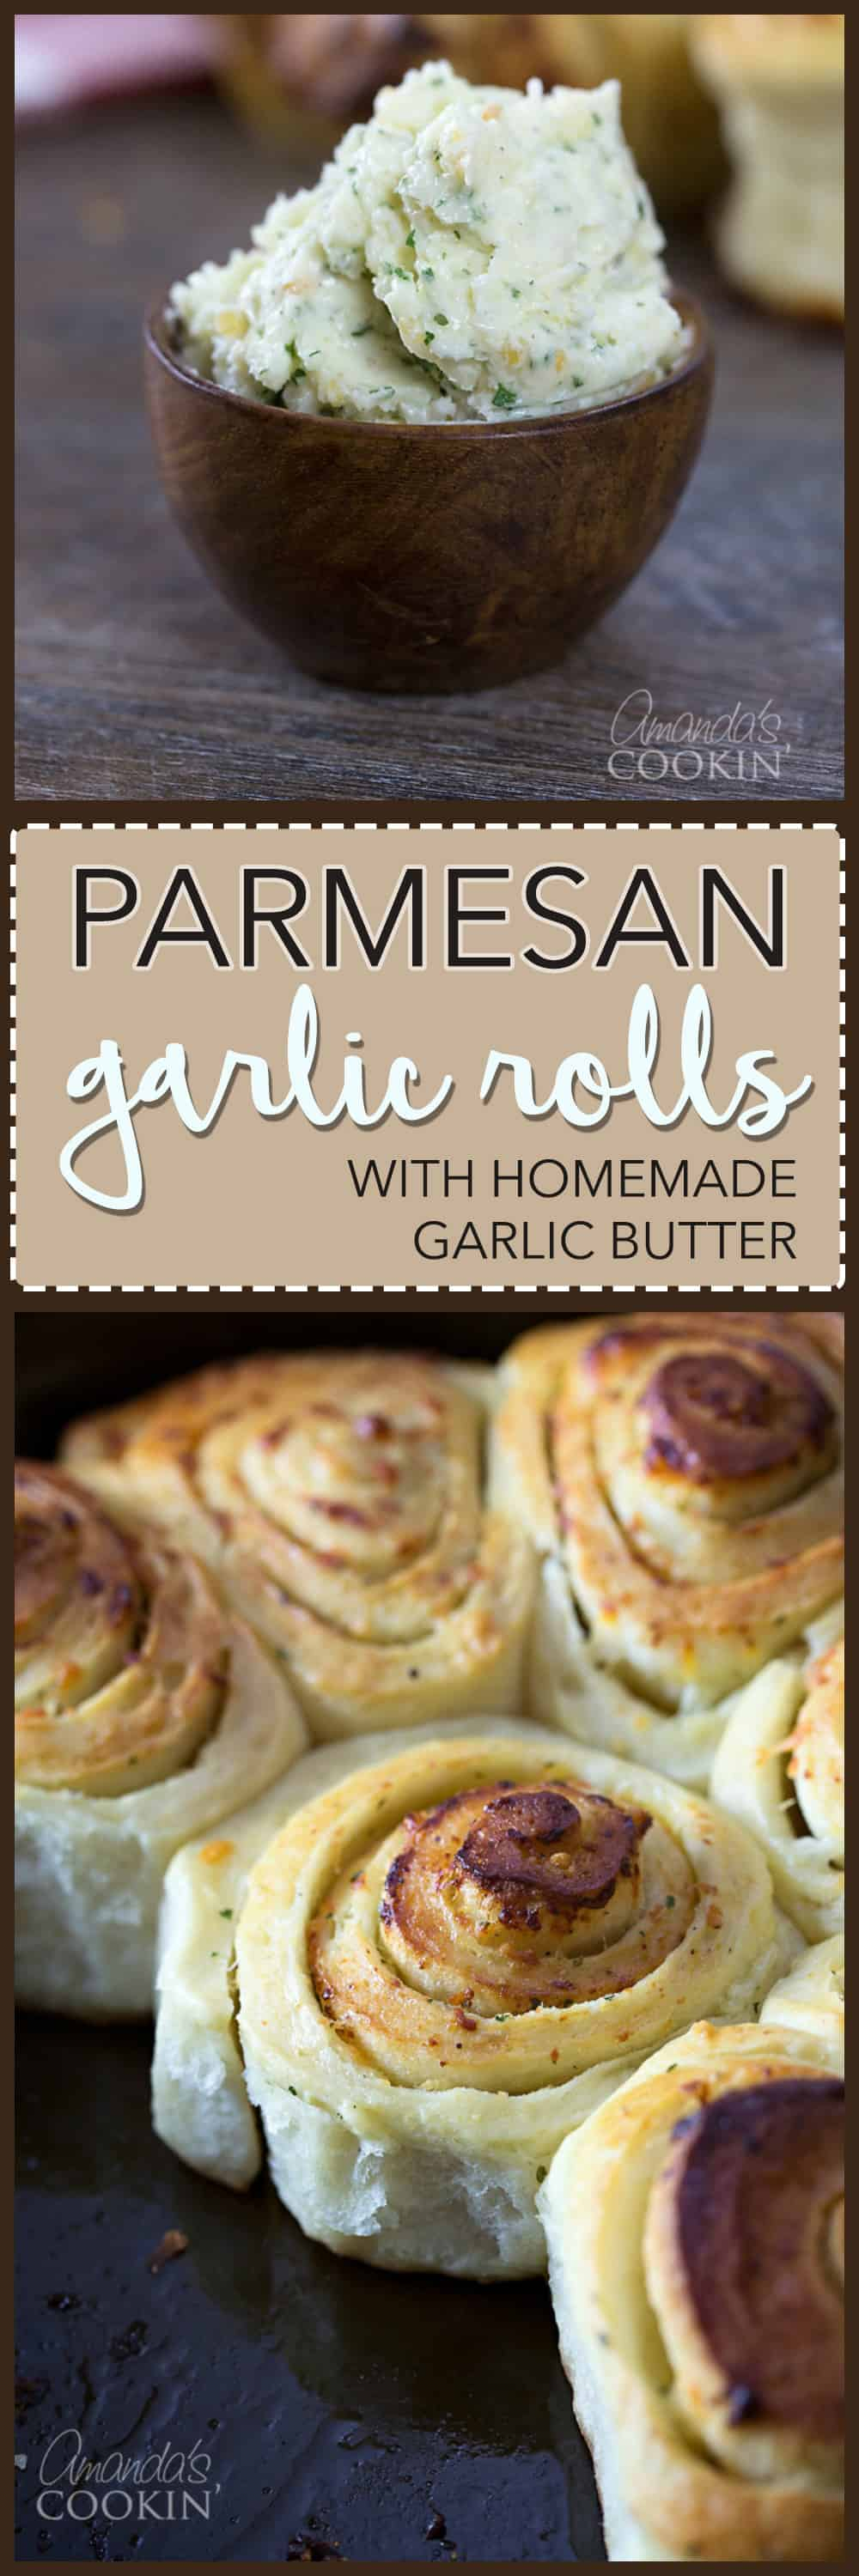 A close up photo of a bowl of garlic butter and a photo of Parmesan garlic rolls.